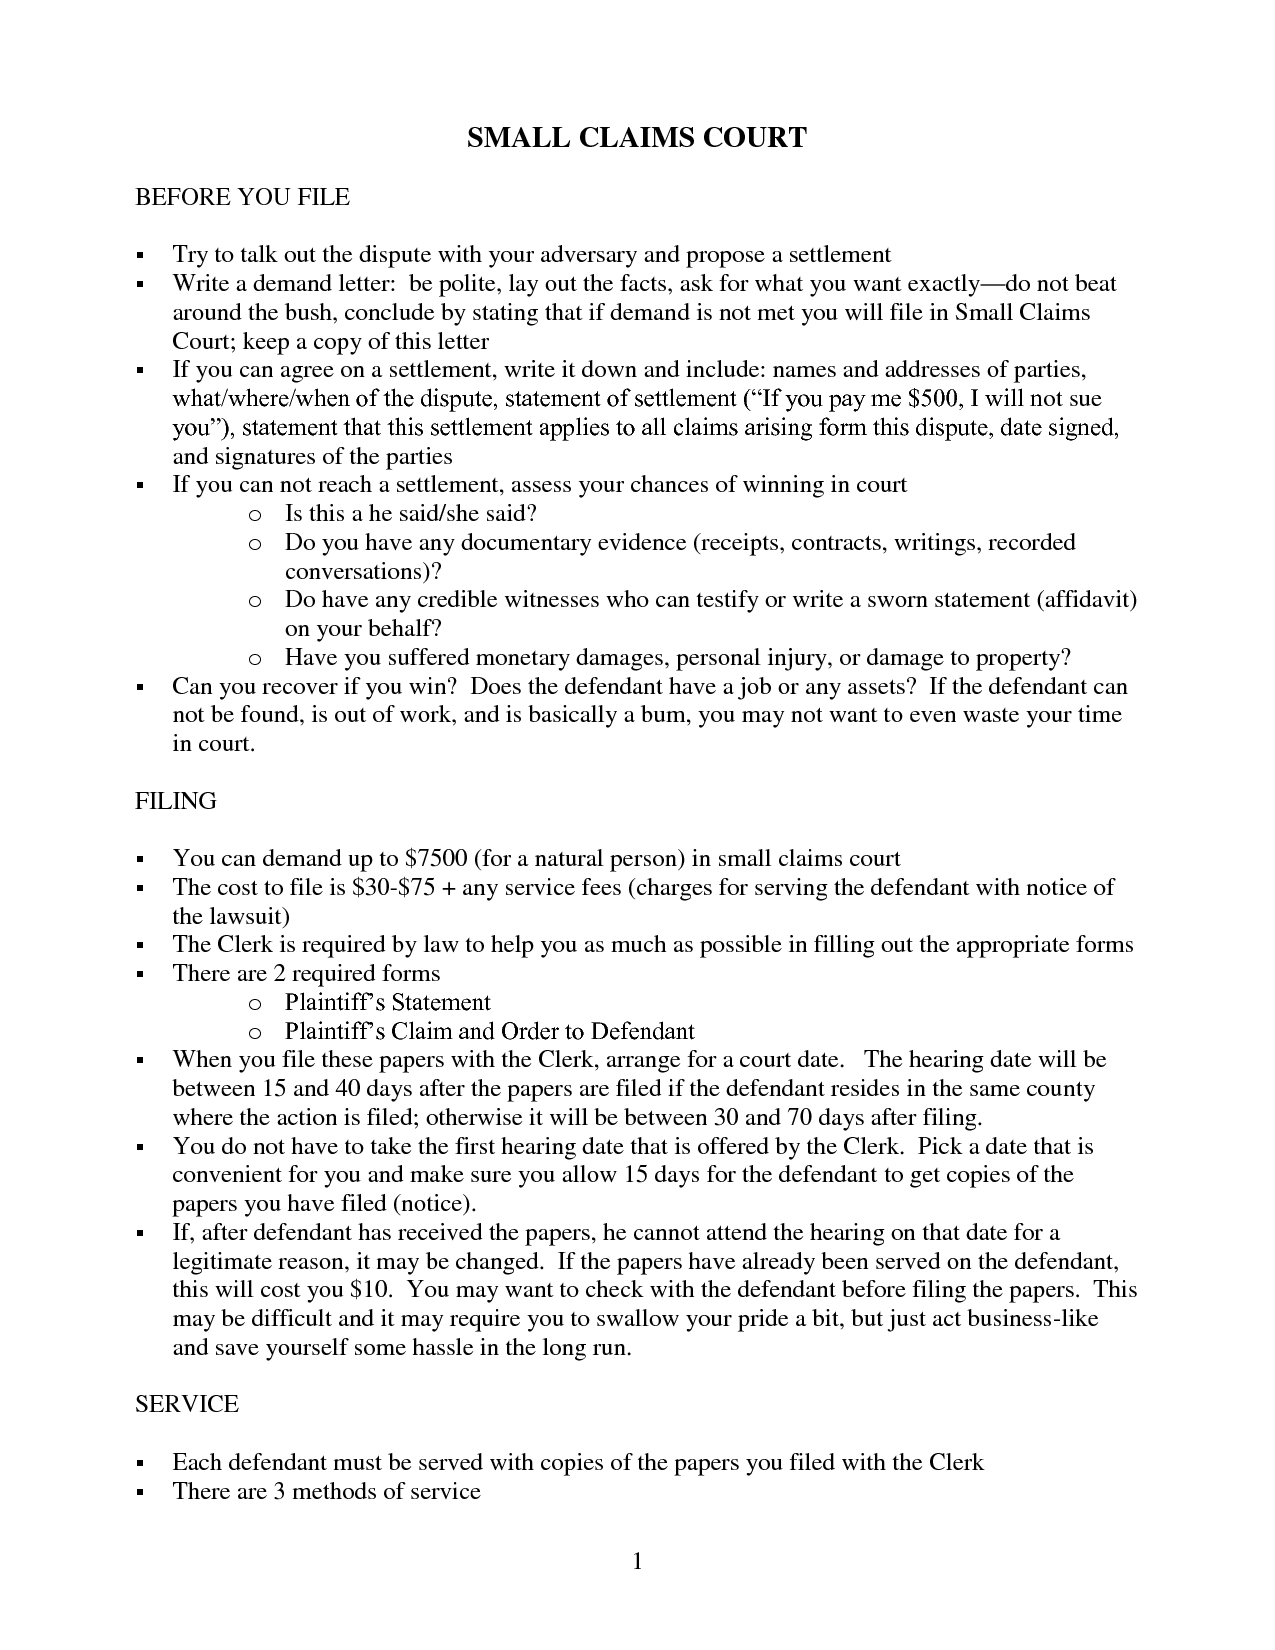 Car Accident Settlement Letter Template - How to Write A Settlement Letter Letter format formal Sample